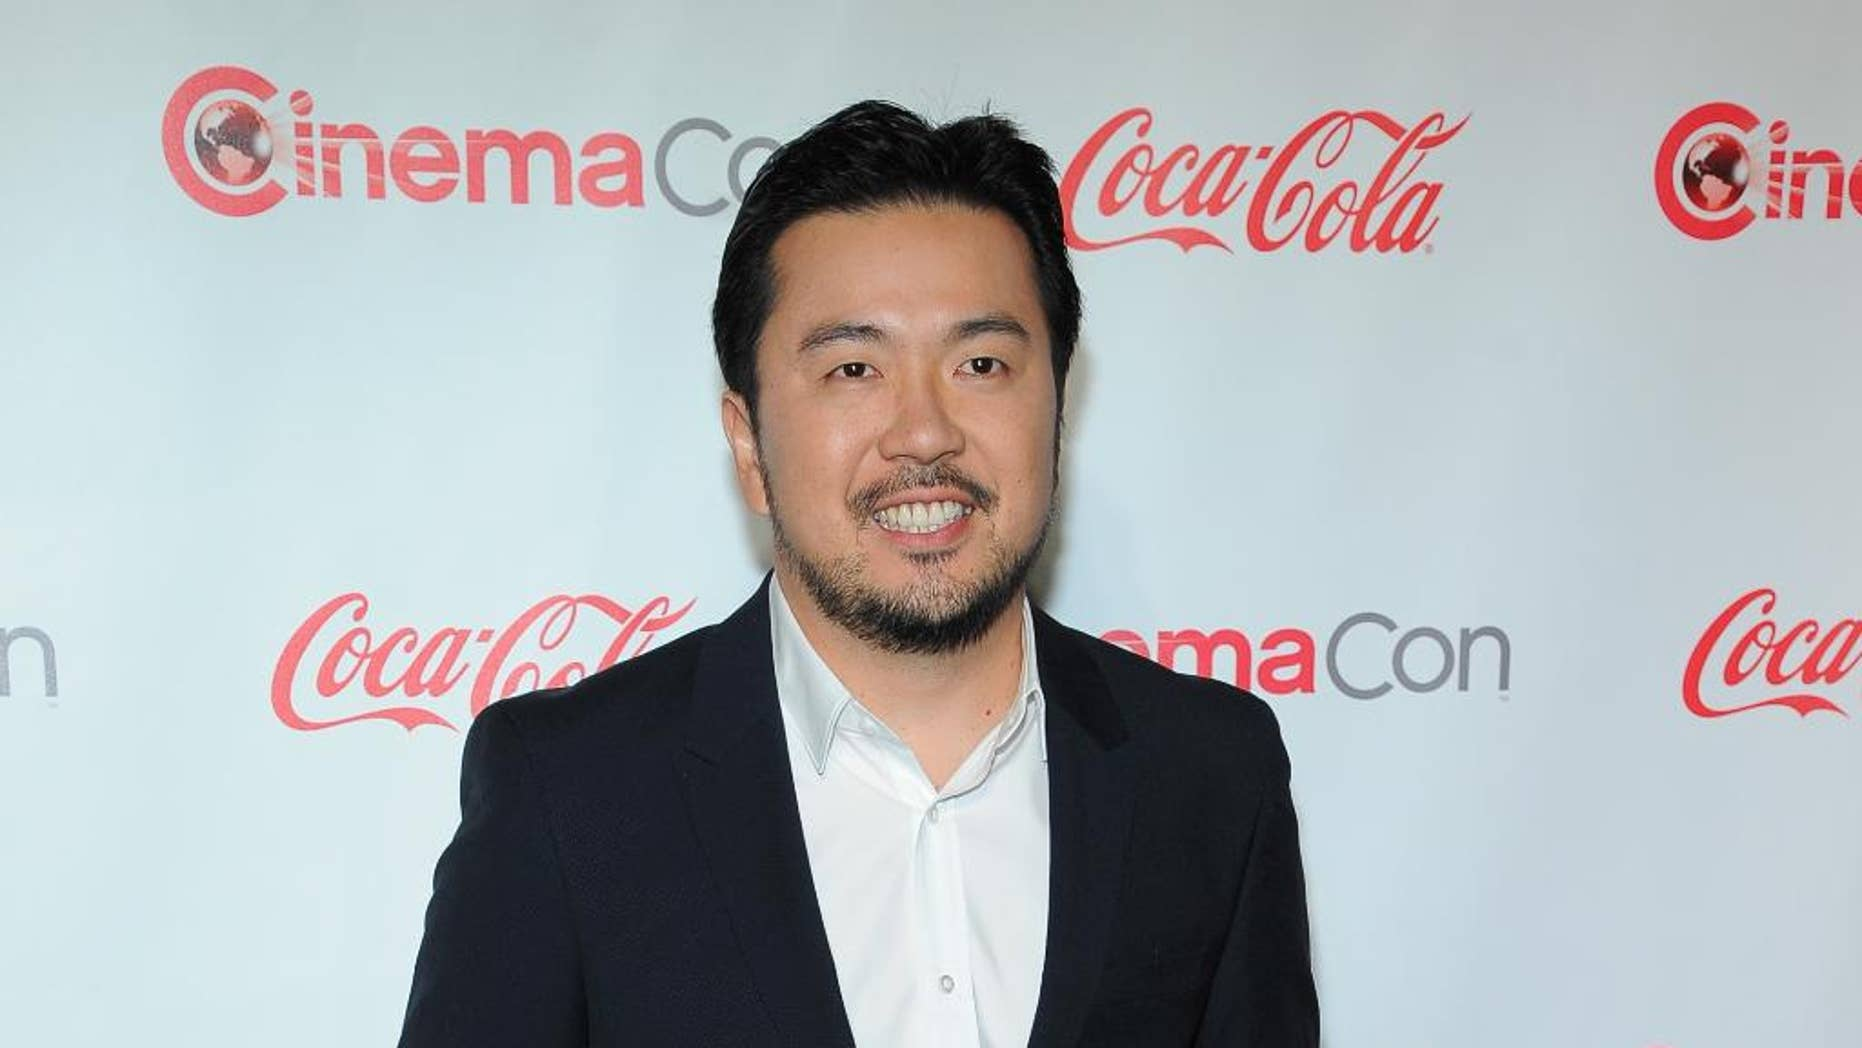 """FILE - In this April 18, 2013 file photo, Justin Lin arrives at the Cinemacon Big Screen Awards red carpet and receives Director of the Year Award at Caesars Palace, in Las Vegas. Lin is set to direct the third installment in Paramount's """"Star Trek"""" franchise, his rep confirmed Monday, Dec. 22, 2014. Lin is no stranger to franchises, having directed several of Universal's """"Fast & Furious"""" films, including the massively successful """"Fast & Furious 6,"""" which made over $788 million worldwide in 2013.  (Photo by Al Powers/Powers Imagery/Invision/AP, File)"""